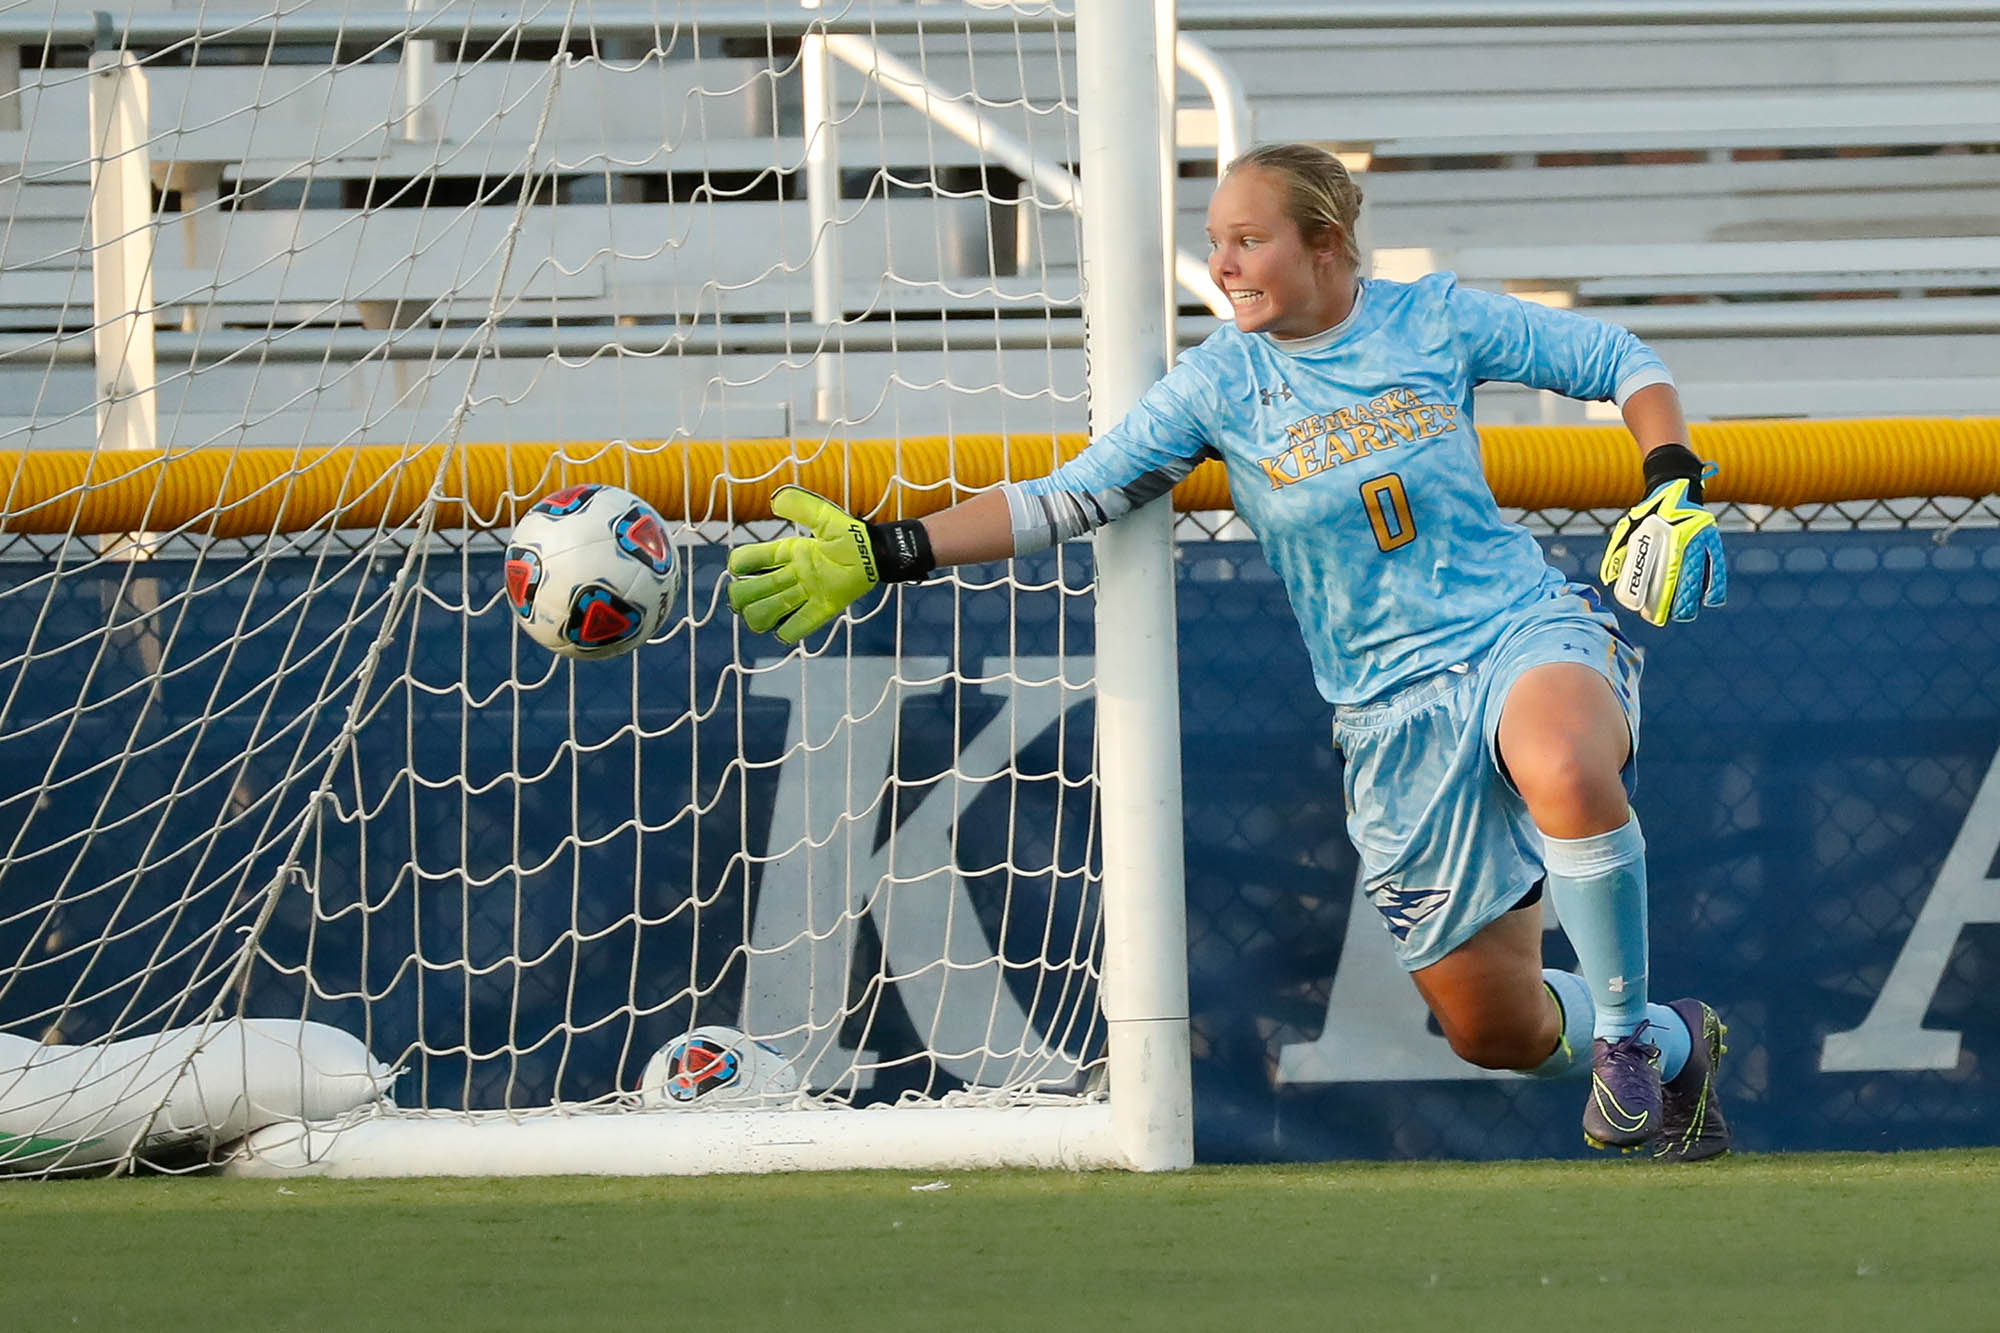 Allie Prososki entered the 2019 season with the best goals against average (1.13) in UNK history. She's recorded a school-record 13 individual shutouts, and her 13 career wins, 208 saves, .836 save percentage and 40 starts at goalie all rank second all-time at UNK. (Photos by Corbey R. Dorsey, UNK Communications)